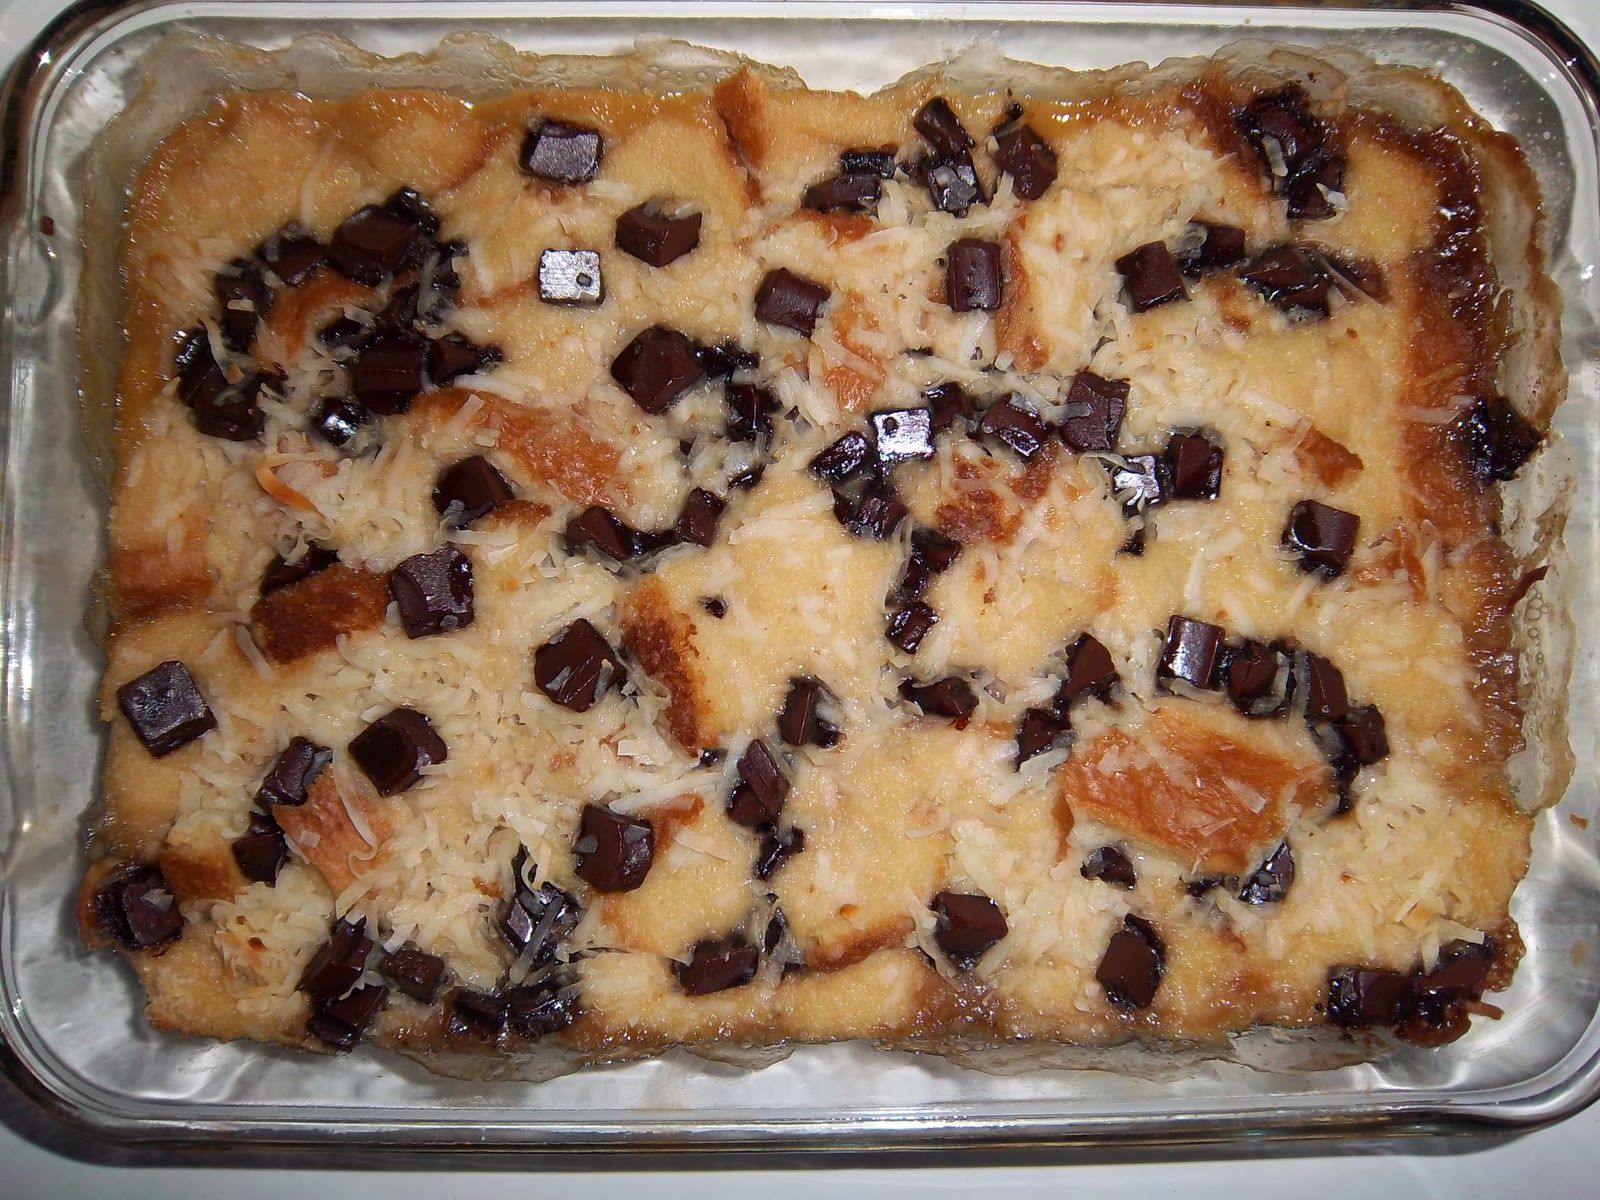 ... : Egg Free, Dairy Free, Nut Free Coconut Chocolate Chip Bread Pudding